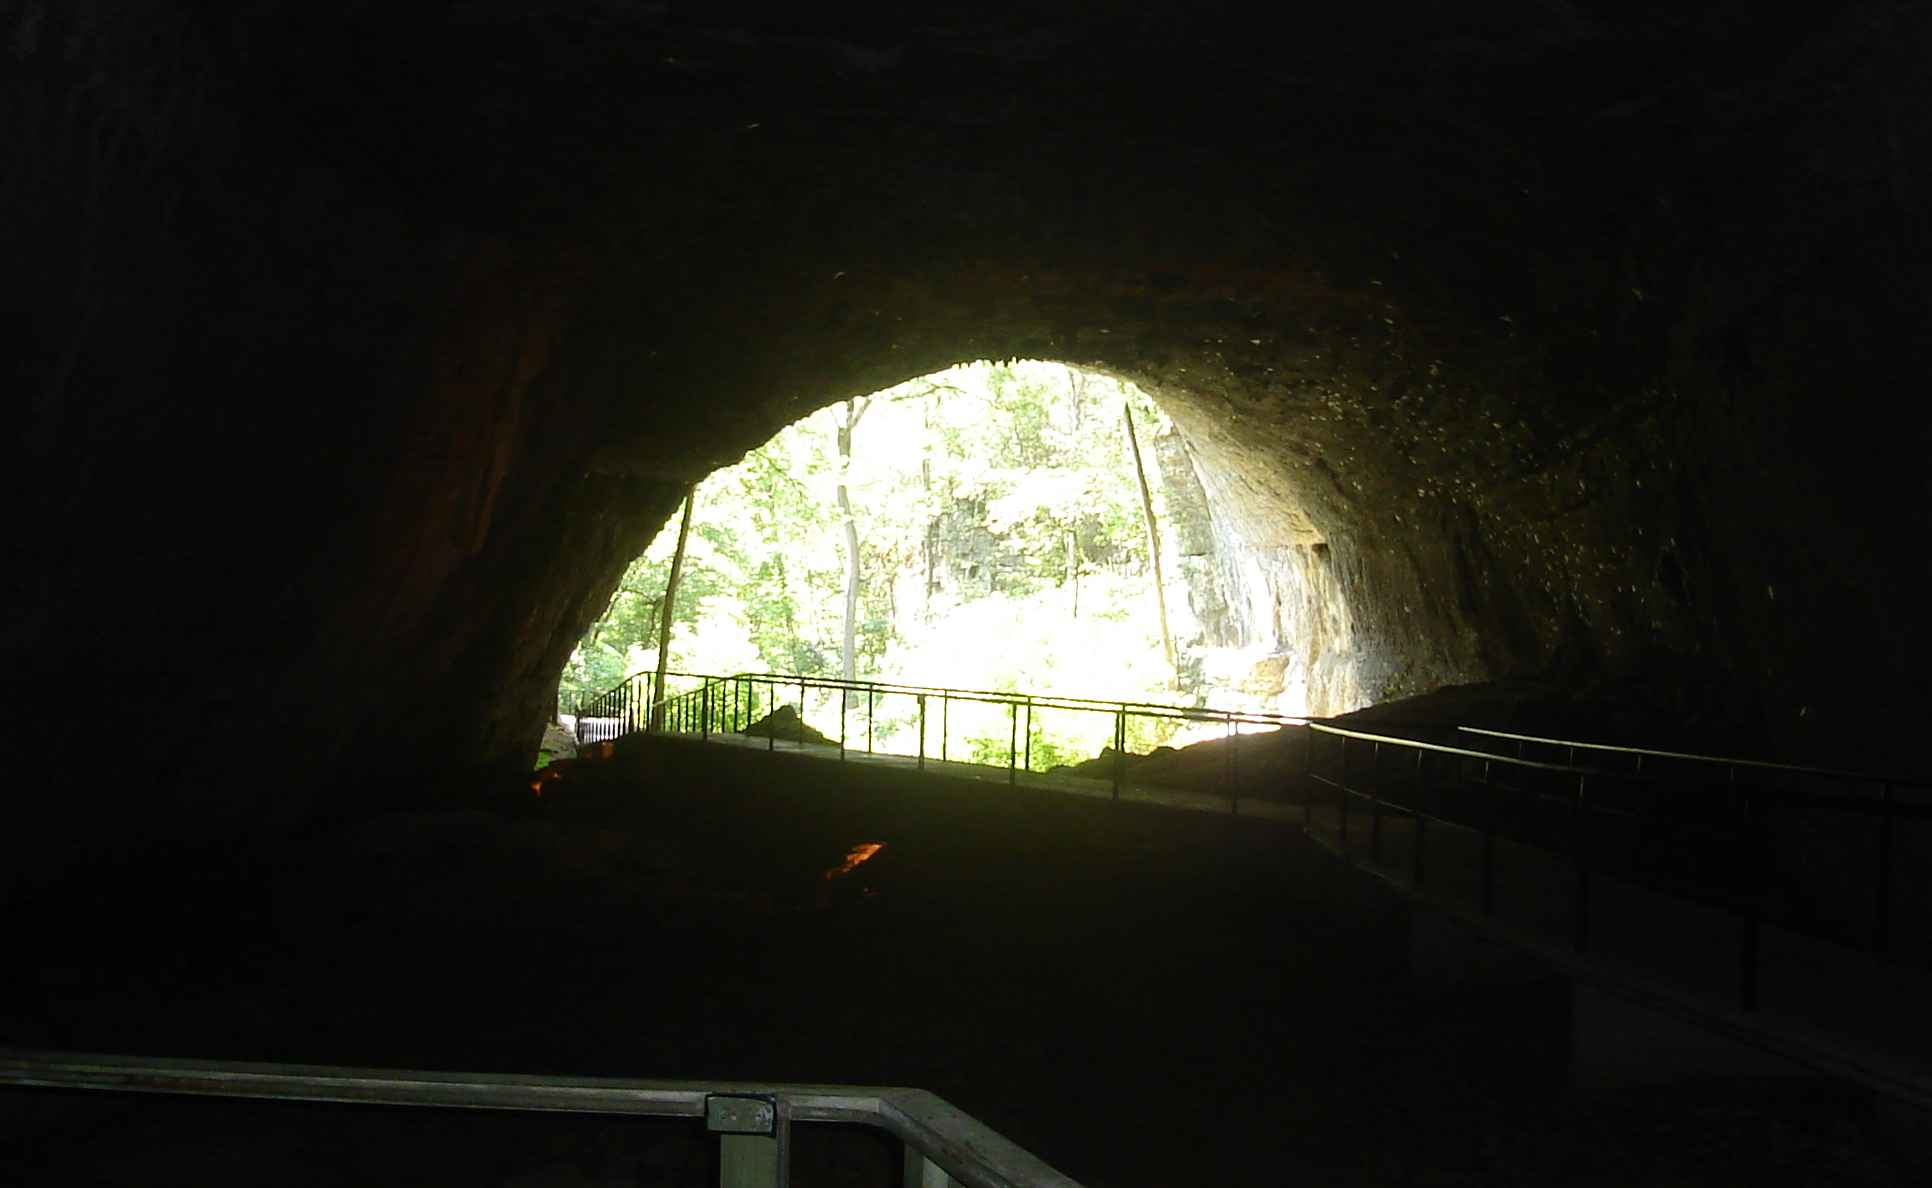 Smallin Cave entrance from inside the cave